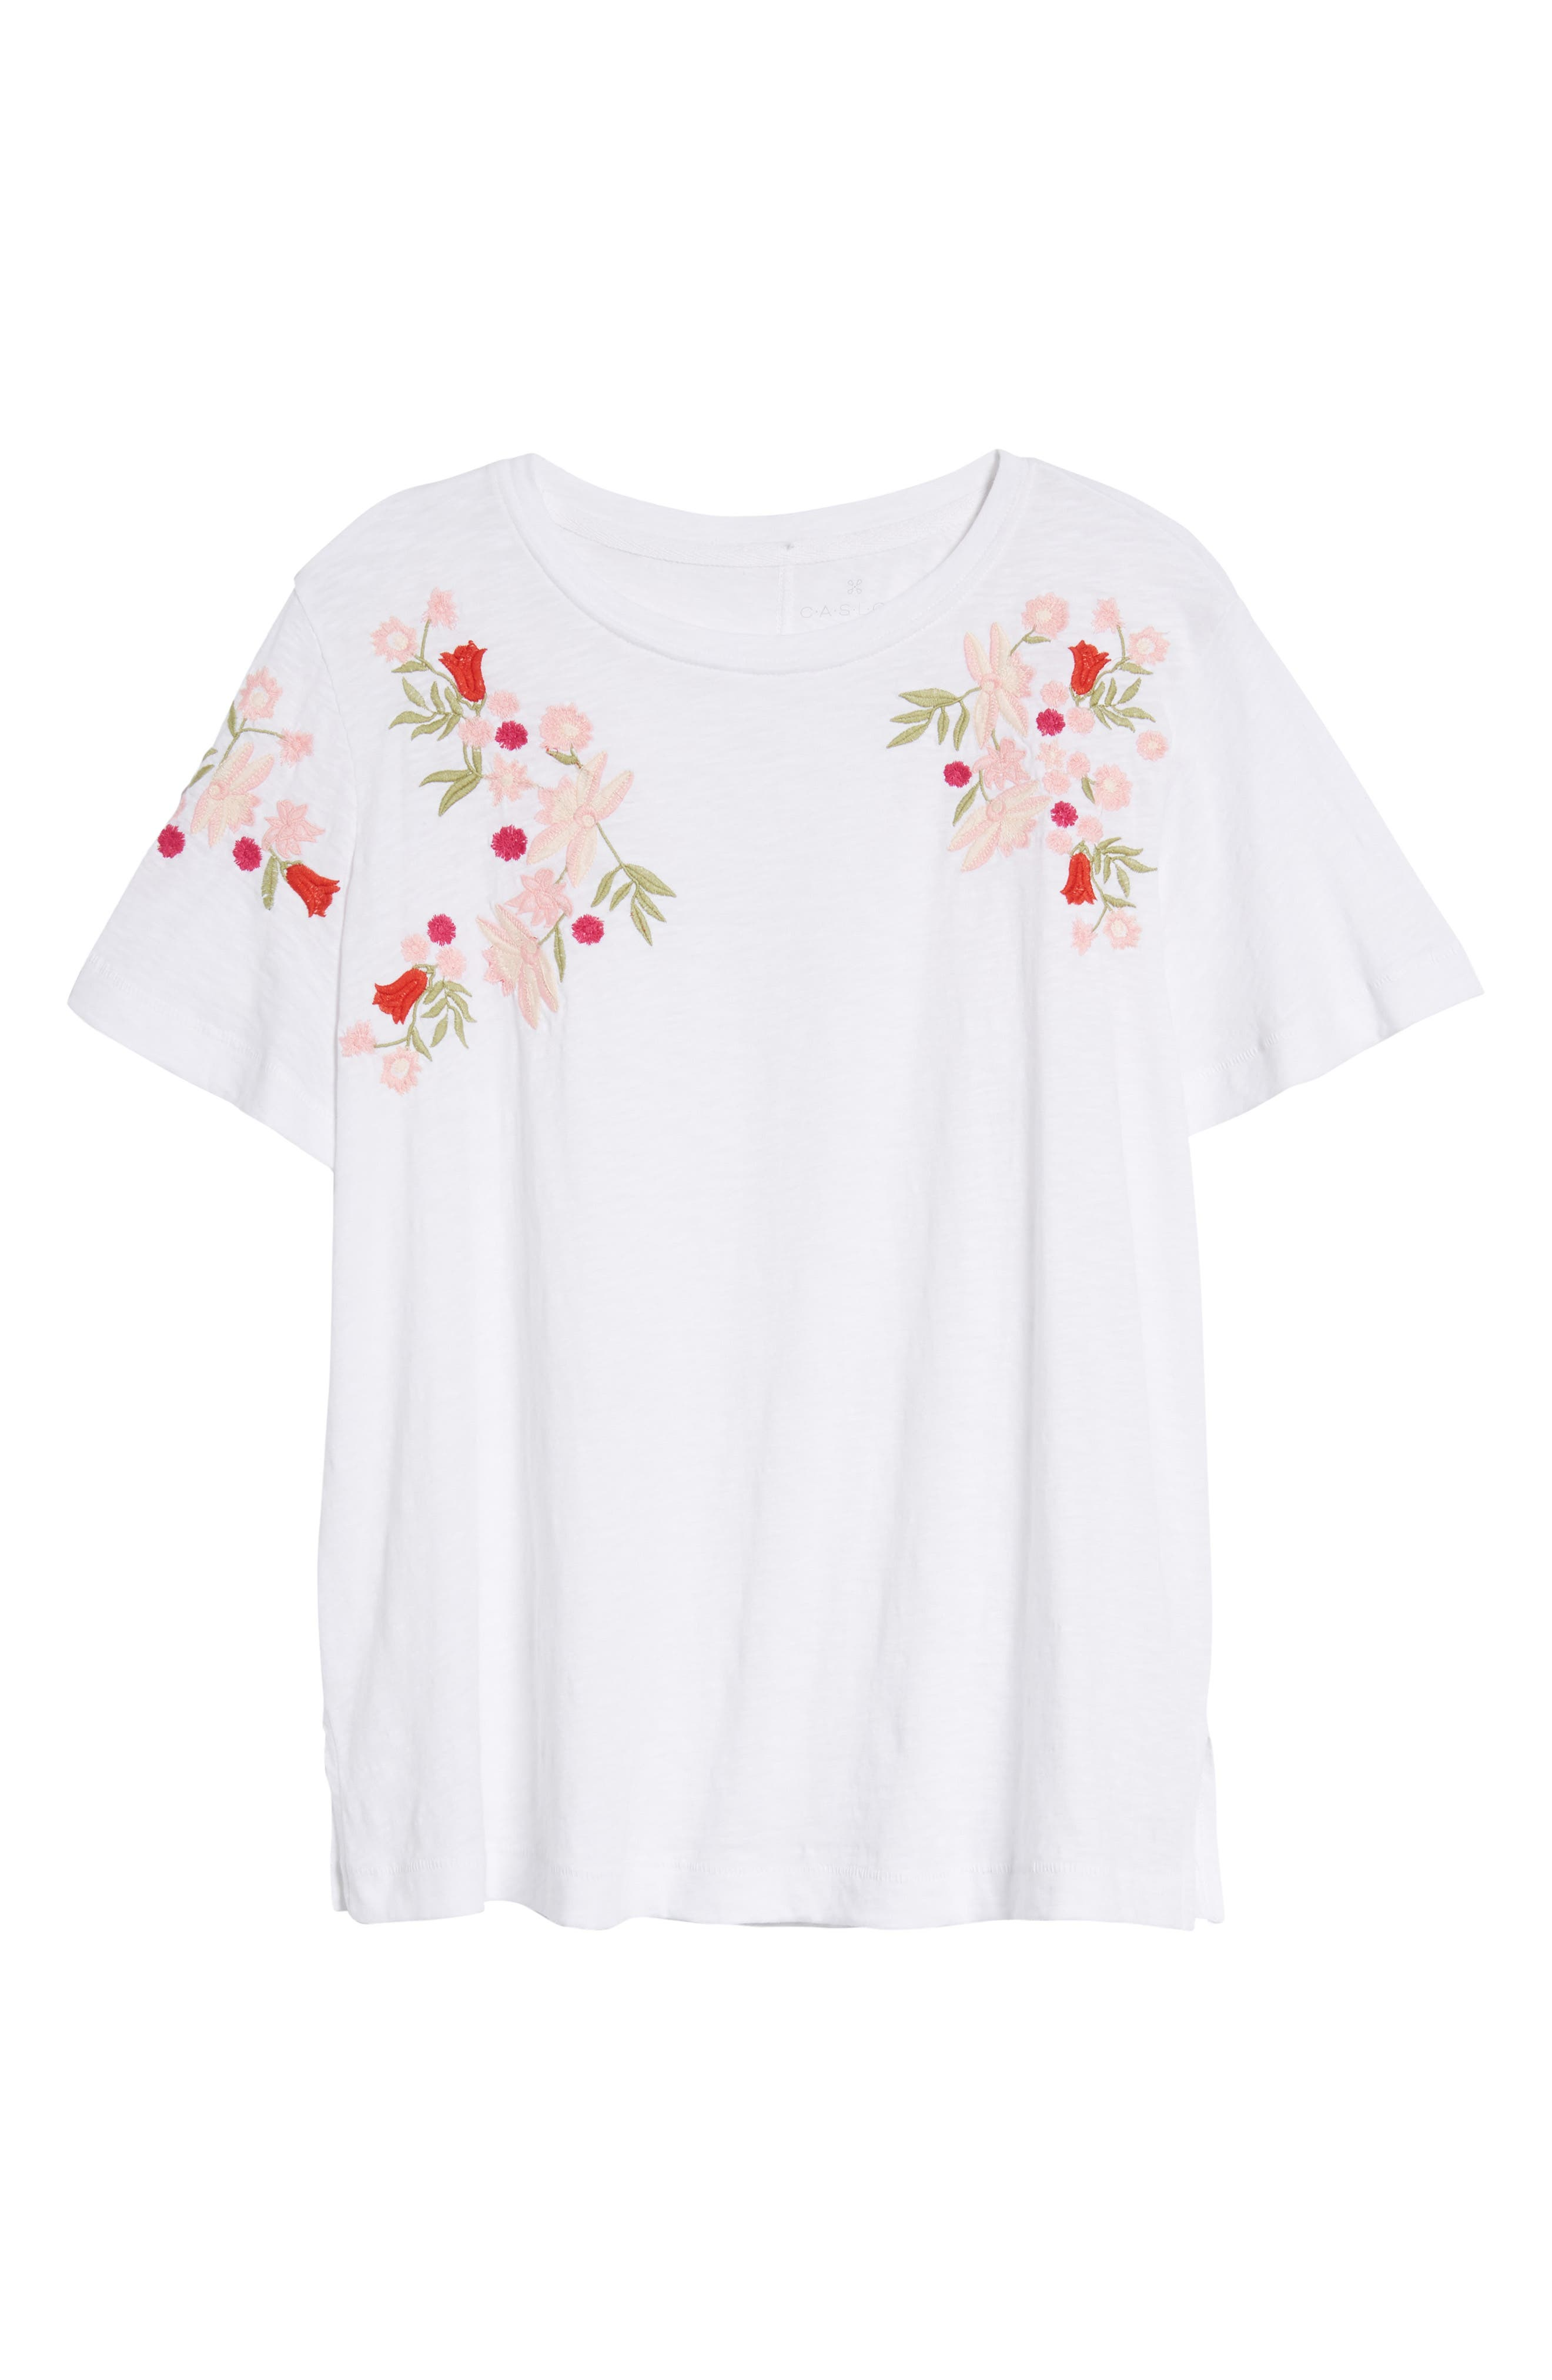 Embroidered Tee,                             Alternate thumbnail 7, color,                             White- Red Lucille